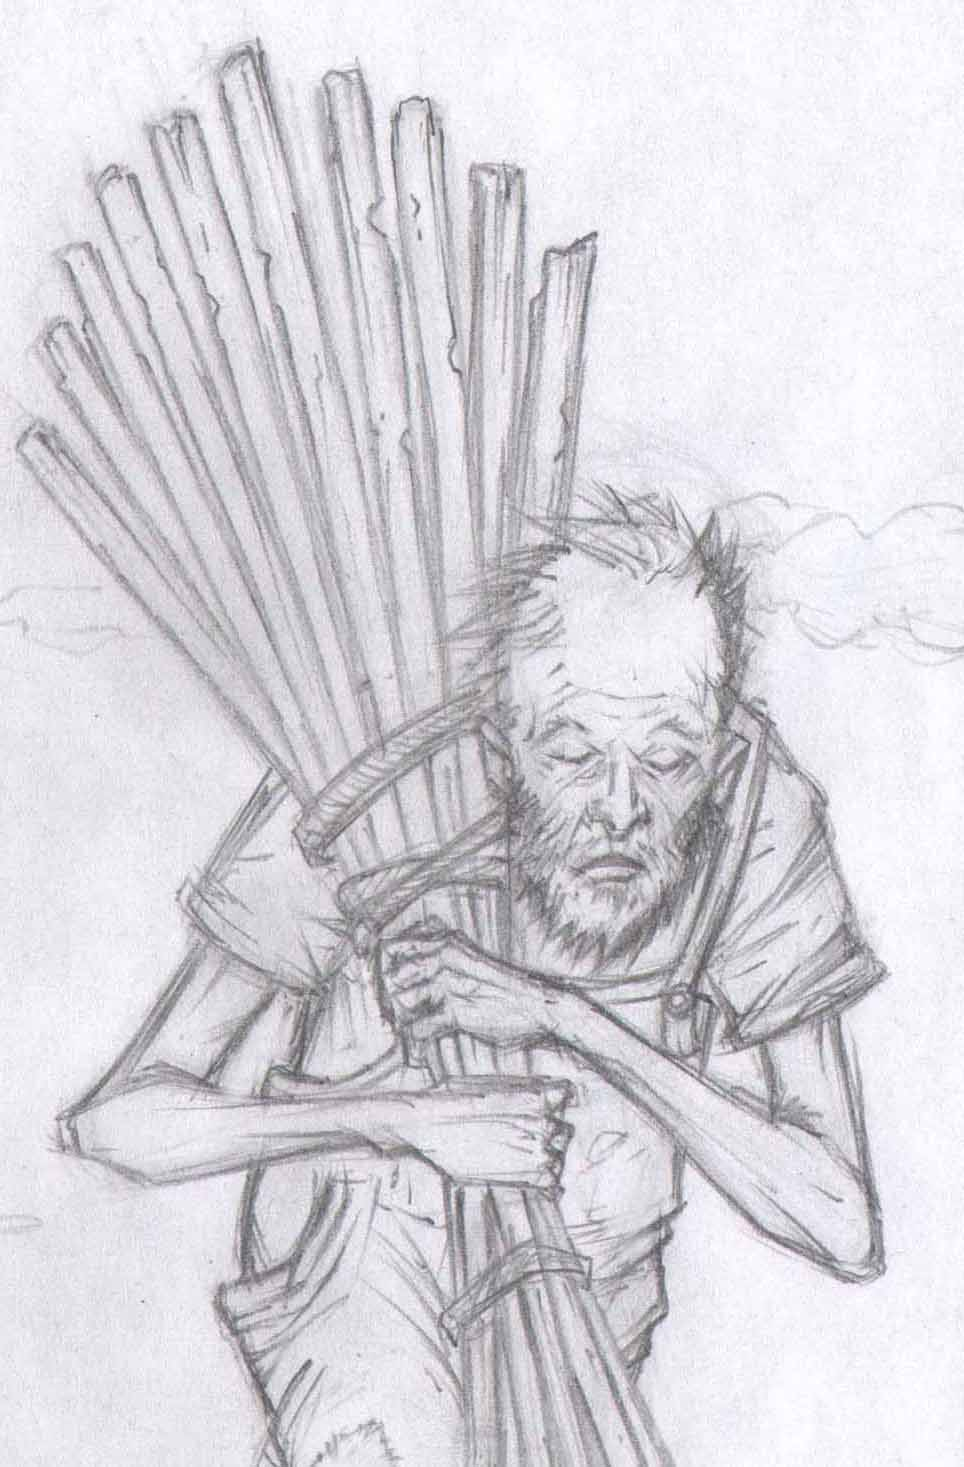 Uncle Henry in Kansas, Art by Emonic.